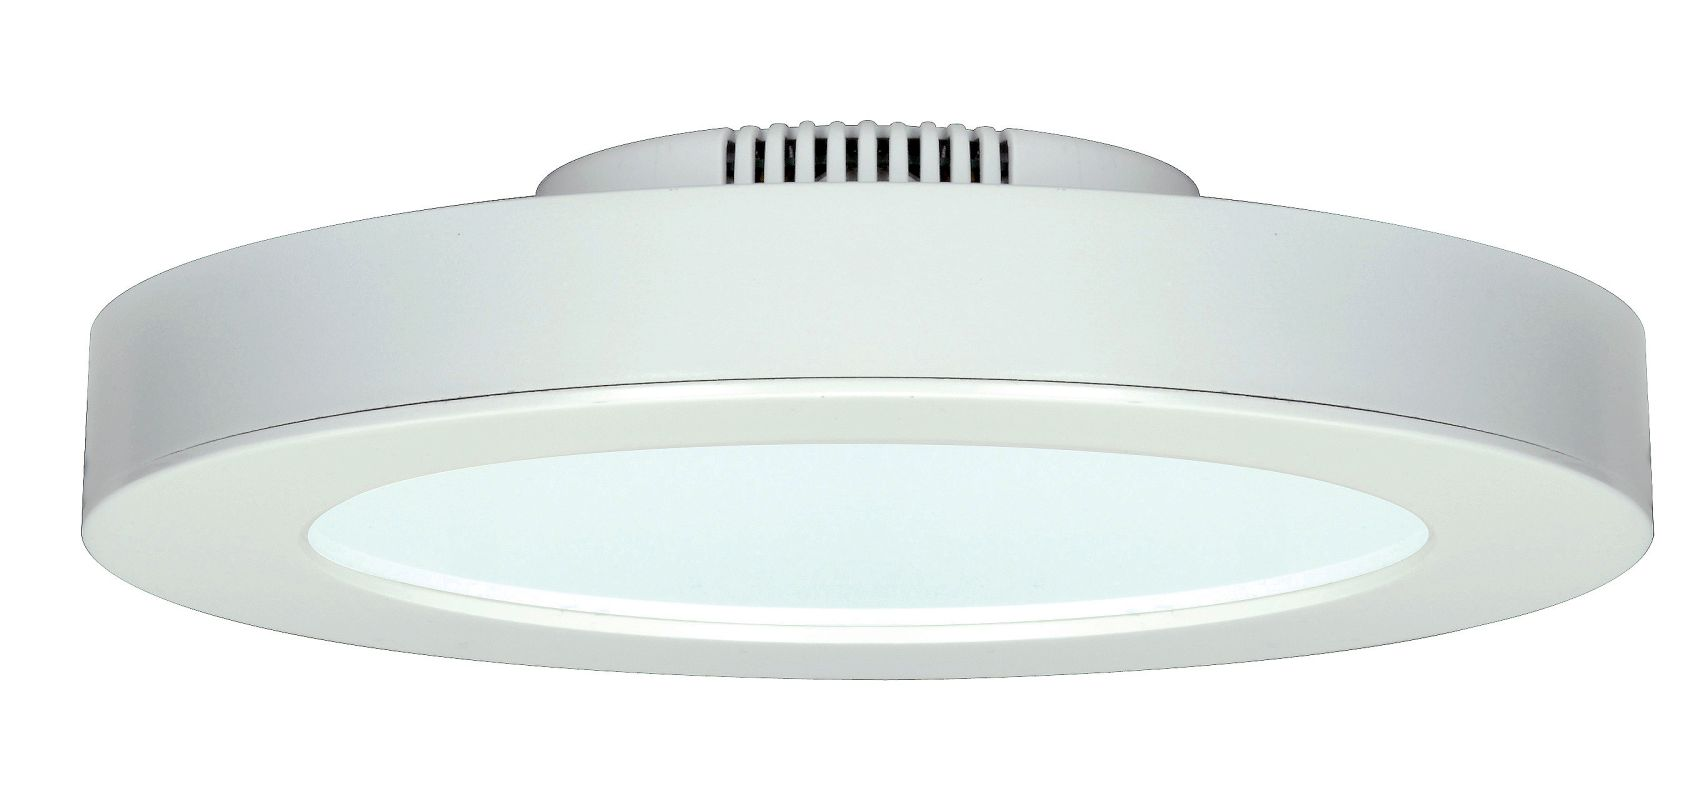 Nuvo Lighting S9190 Blink 1 Light LED Energy Star Flush Mount Ceiling